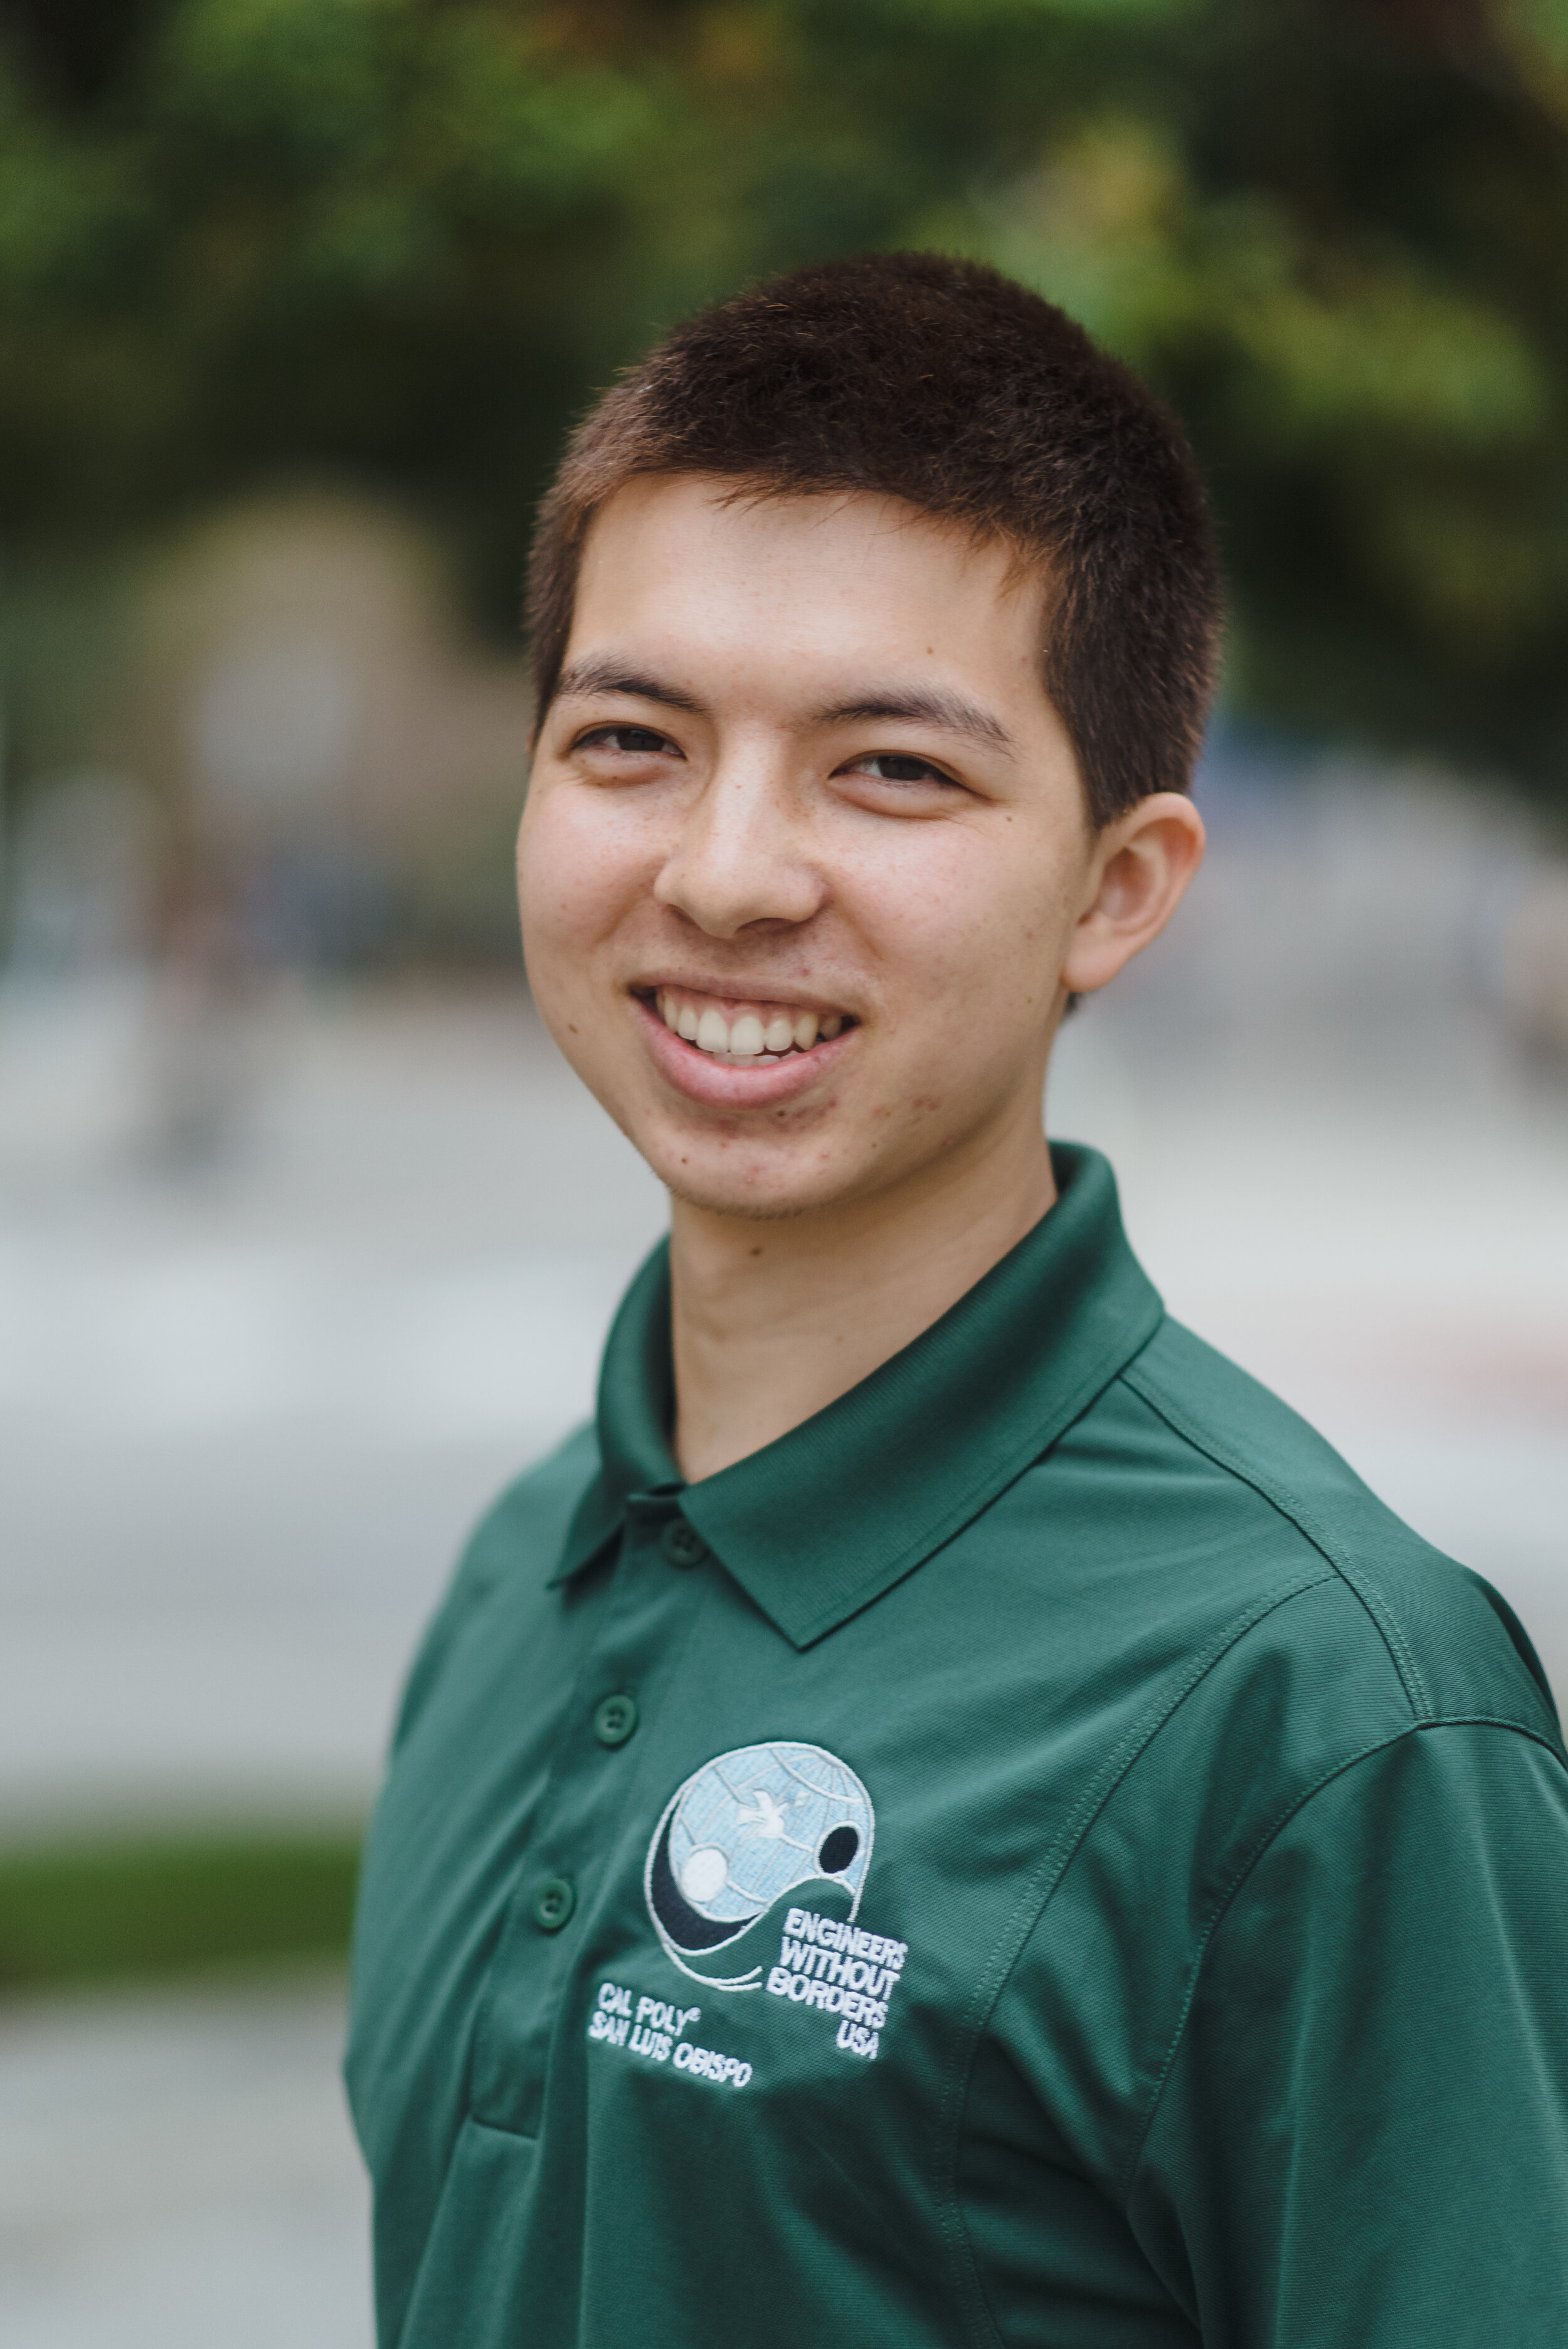 Alex Cushing - IMPACT Coordinator    Grad 2021 - Materials Engineering   Alex is a second year Materials Engineering student from Los Altos, California. He joined Engineers Without Borders because he wanted to get more invested in the community he would be part of for four years. His favorite EWB memory was the weekend camping trip. Outside of studying for classes, you can find Alex at the gym or the newest restaurant in town.